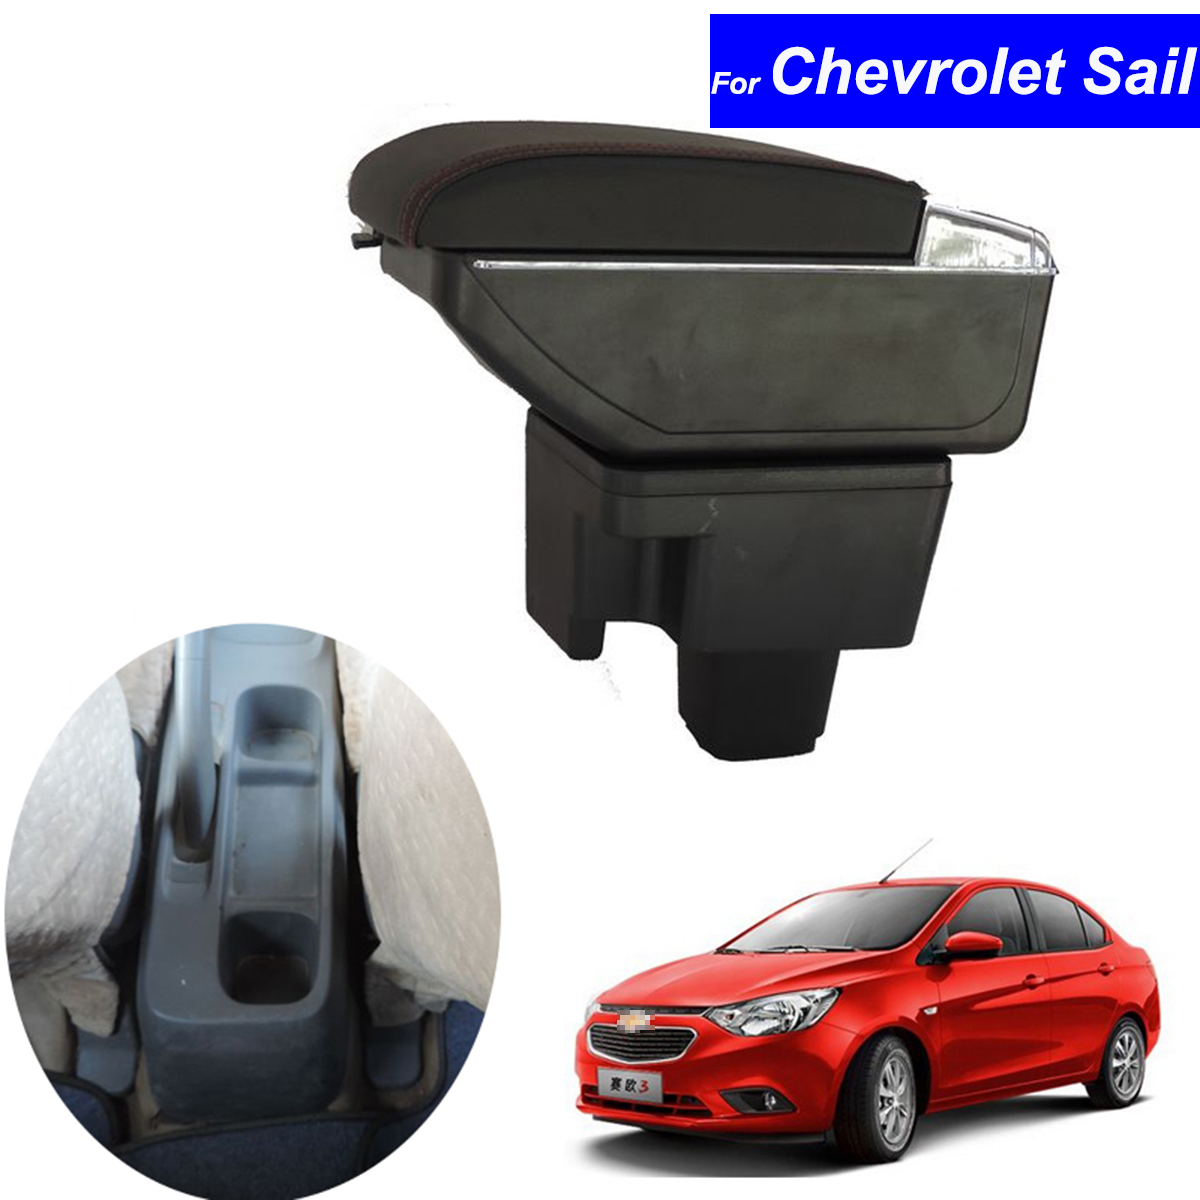 Leather Car Center Console Armrests Storage Box for Chevrolet Sail 2010 2011 2012 2013 2014 Auto Interior Parts Free Shipping for skoda octavia 2009 2010 2011 2012 2013 2014 2015 2016 armrest with usb leather car center console armrests storage box